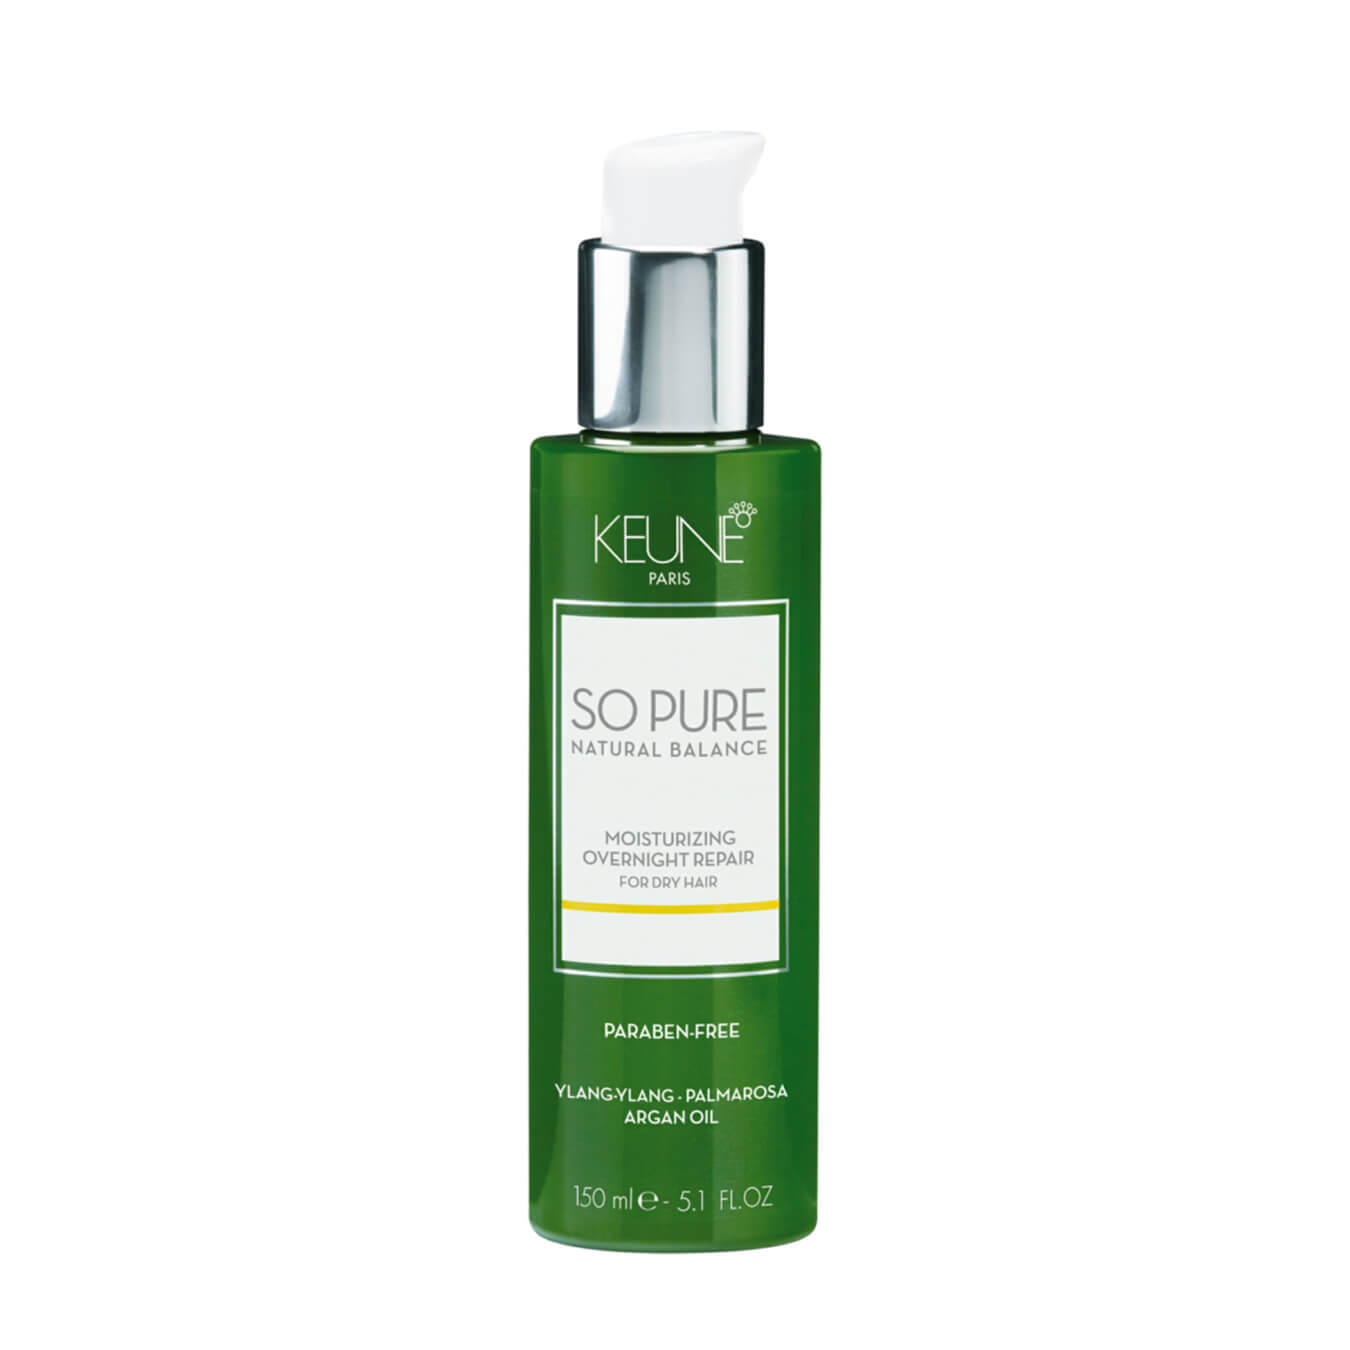 Kauf Keune So Pure Moisturizing Overnight Repair 150ml